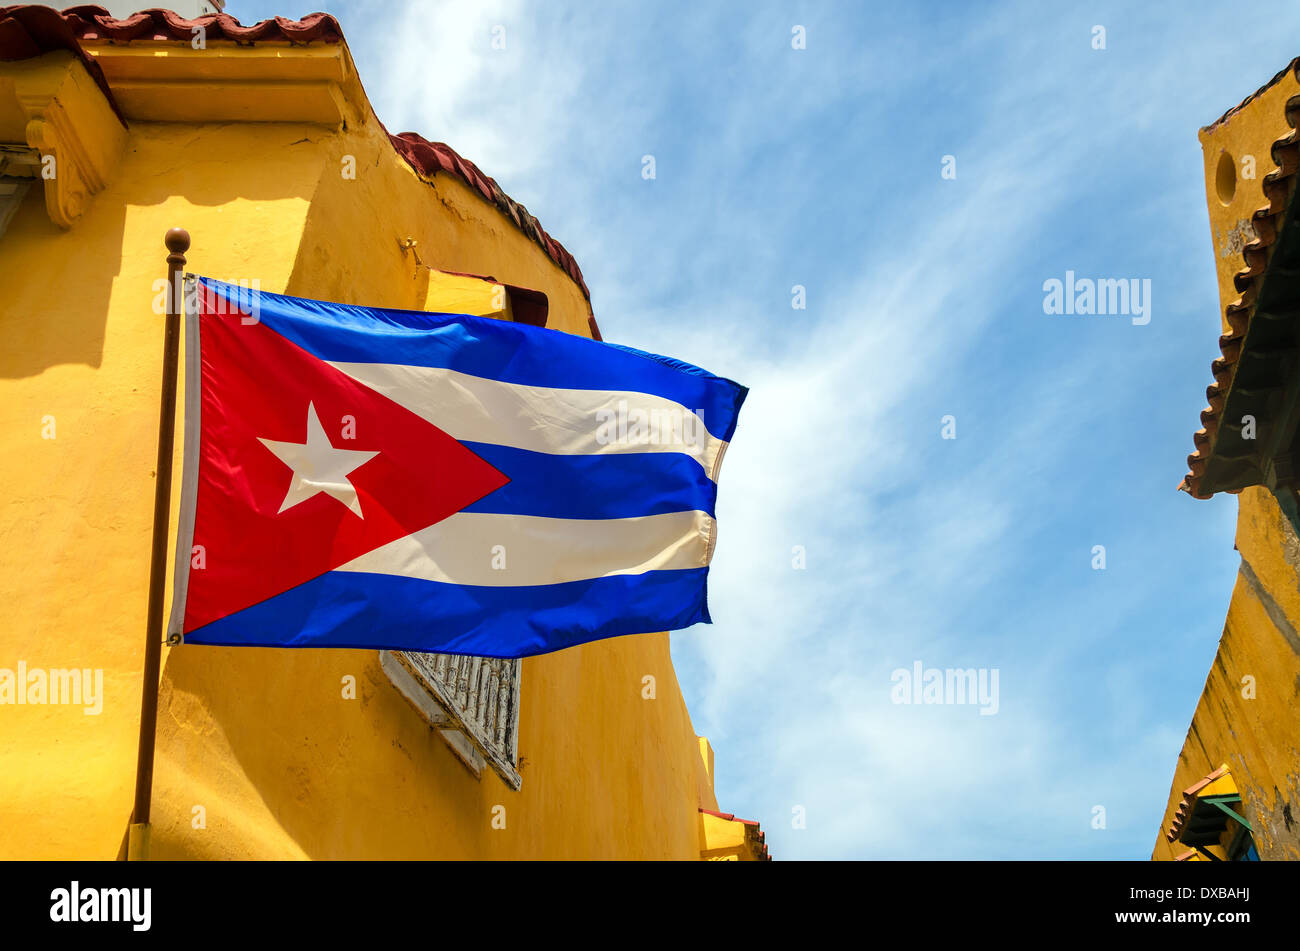 Cuban flag set against blue sky and yellow colonial buildings - Stock Image